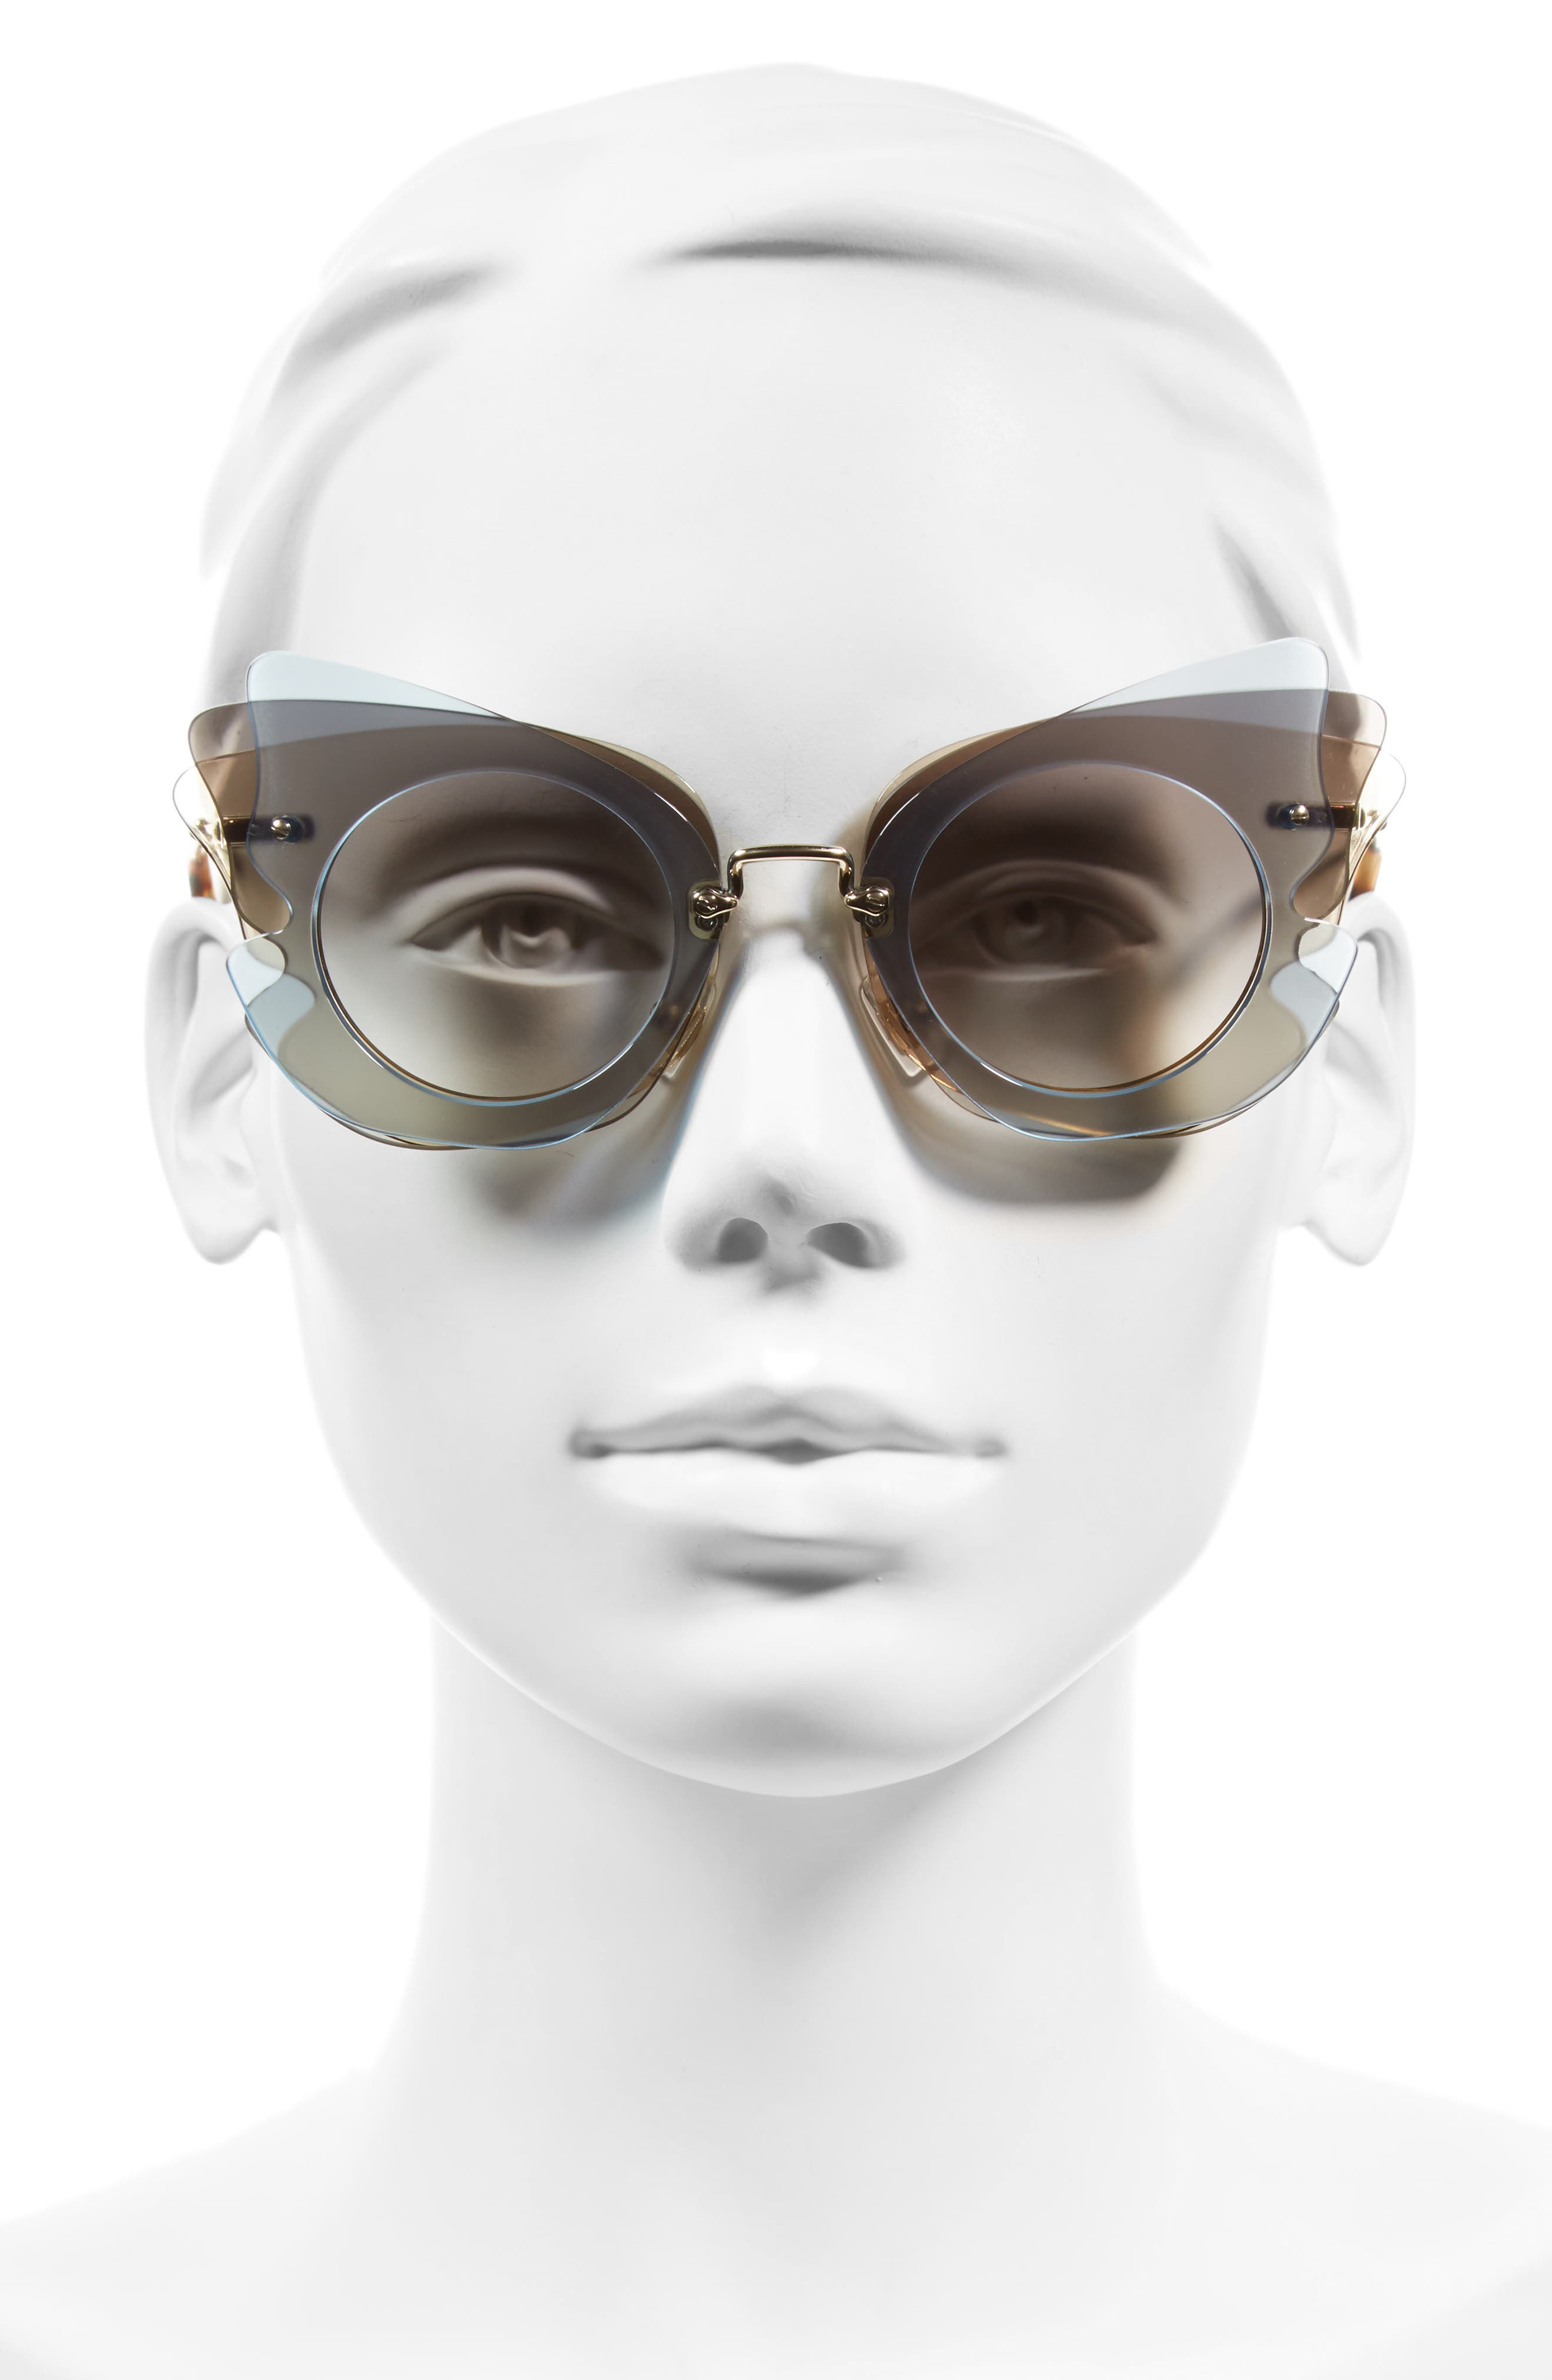 63mm Butterfly Sunglasses,                             Alternate thumbnail 2, color,                             710